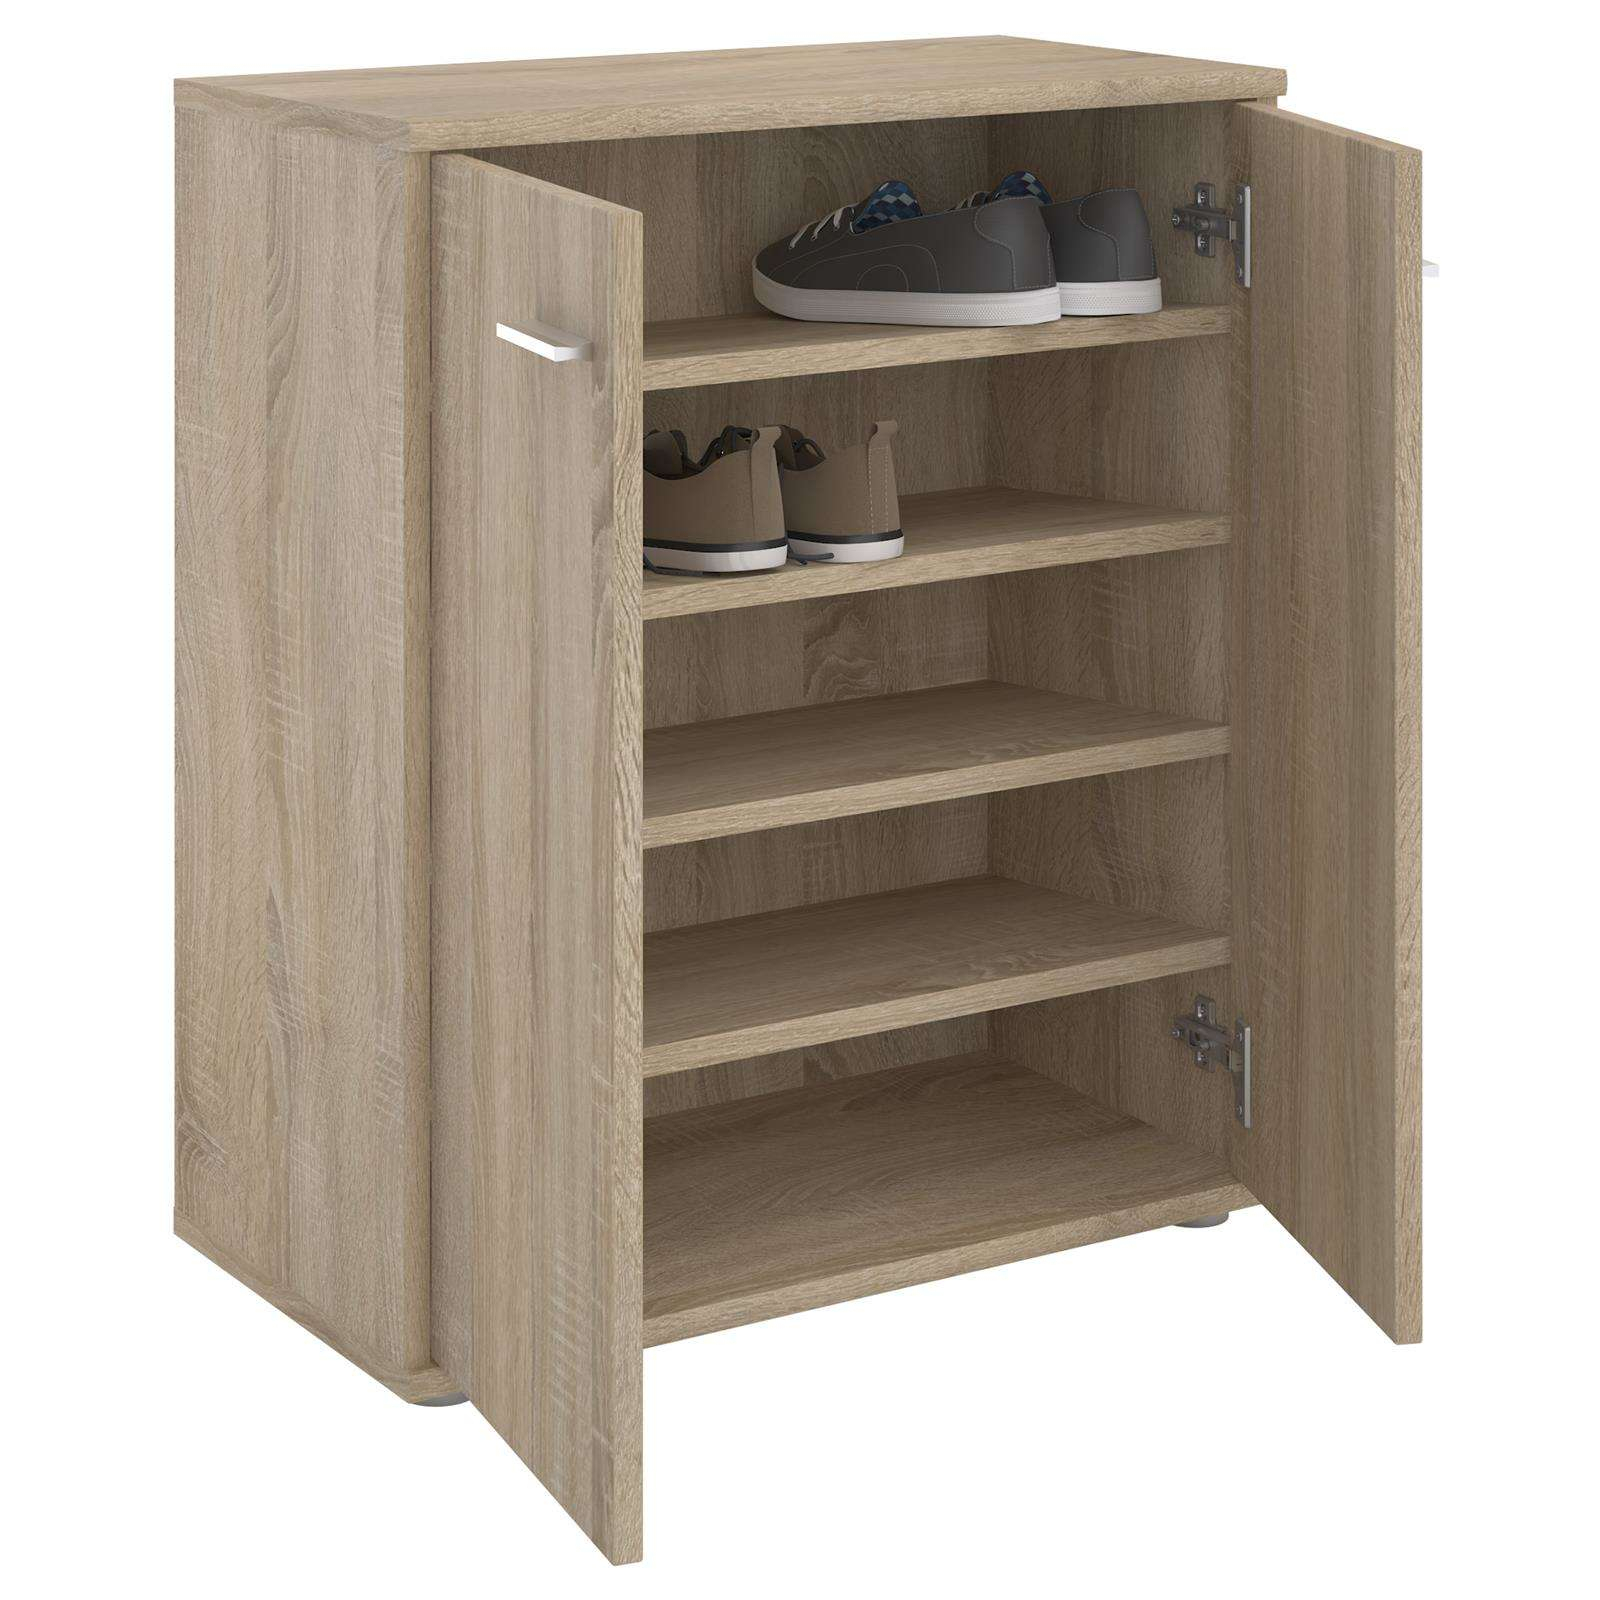 Meuble A Chaussures Olympe En Melamine Decor Chene Sonoma A Meuble Chaussures But Agencecormierdelauniere Com Agencecormierdelauniere Com